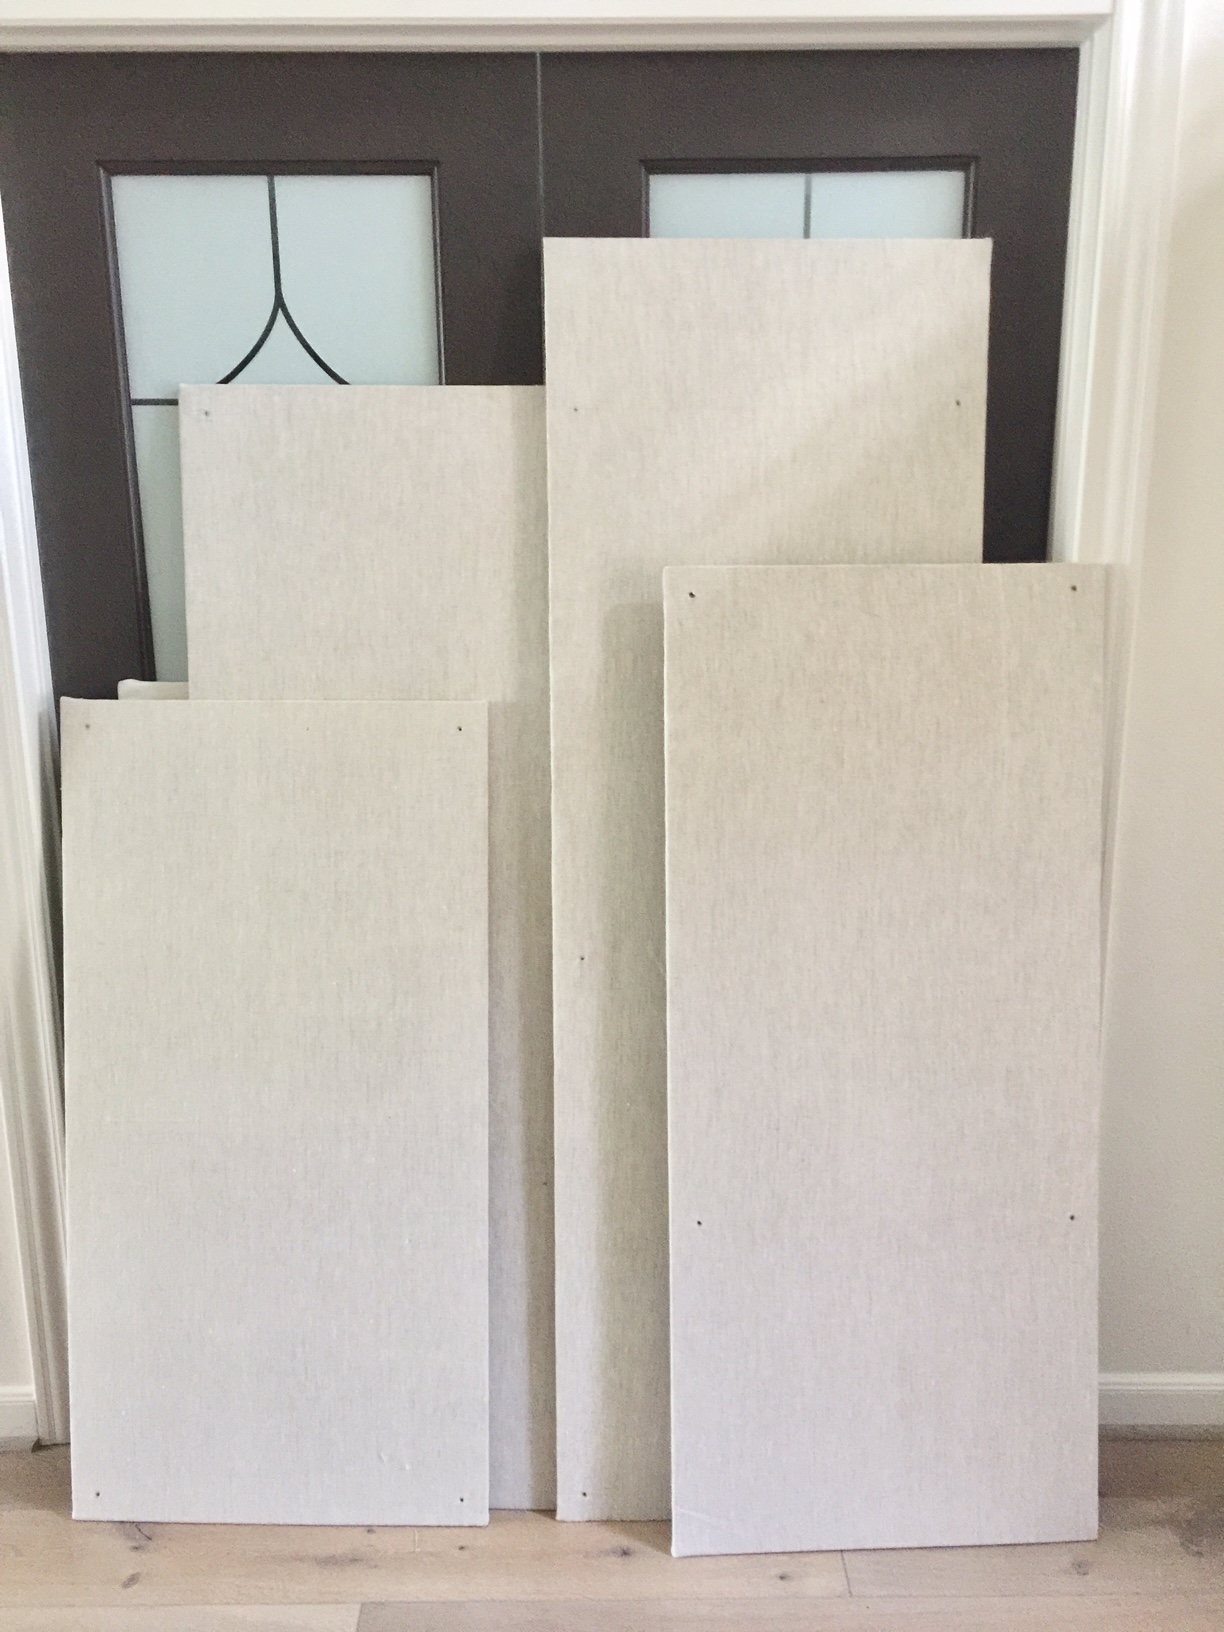 Linen covered tackboards in assorted sizes